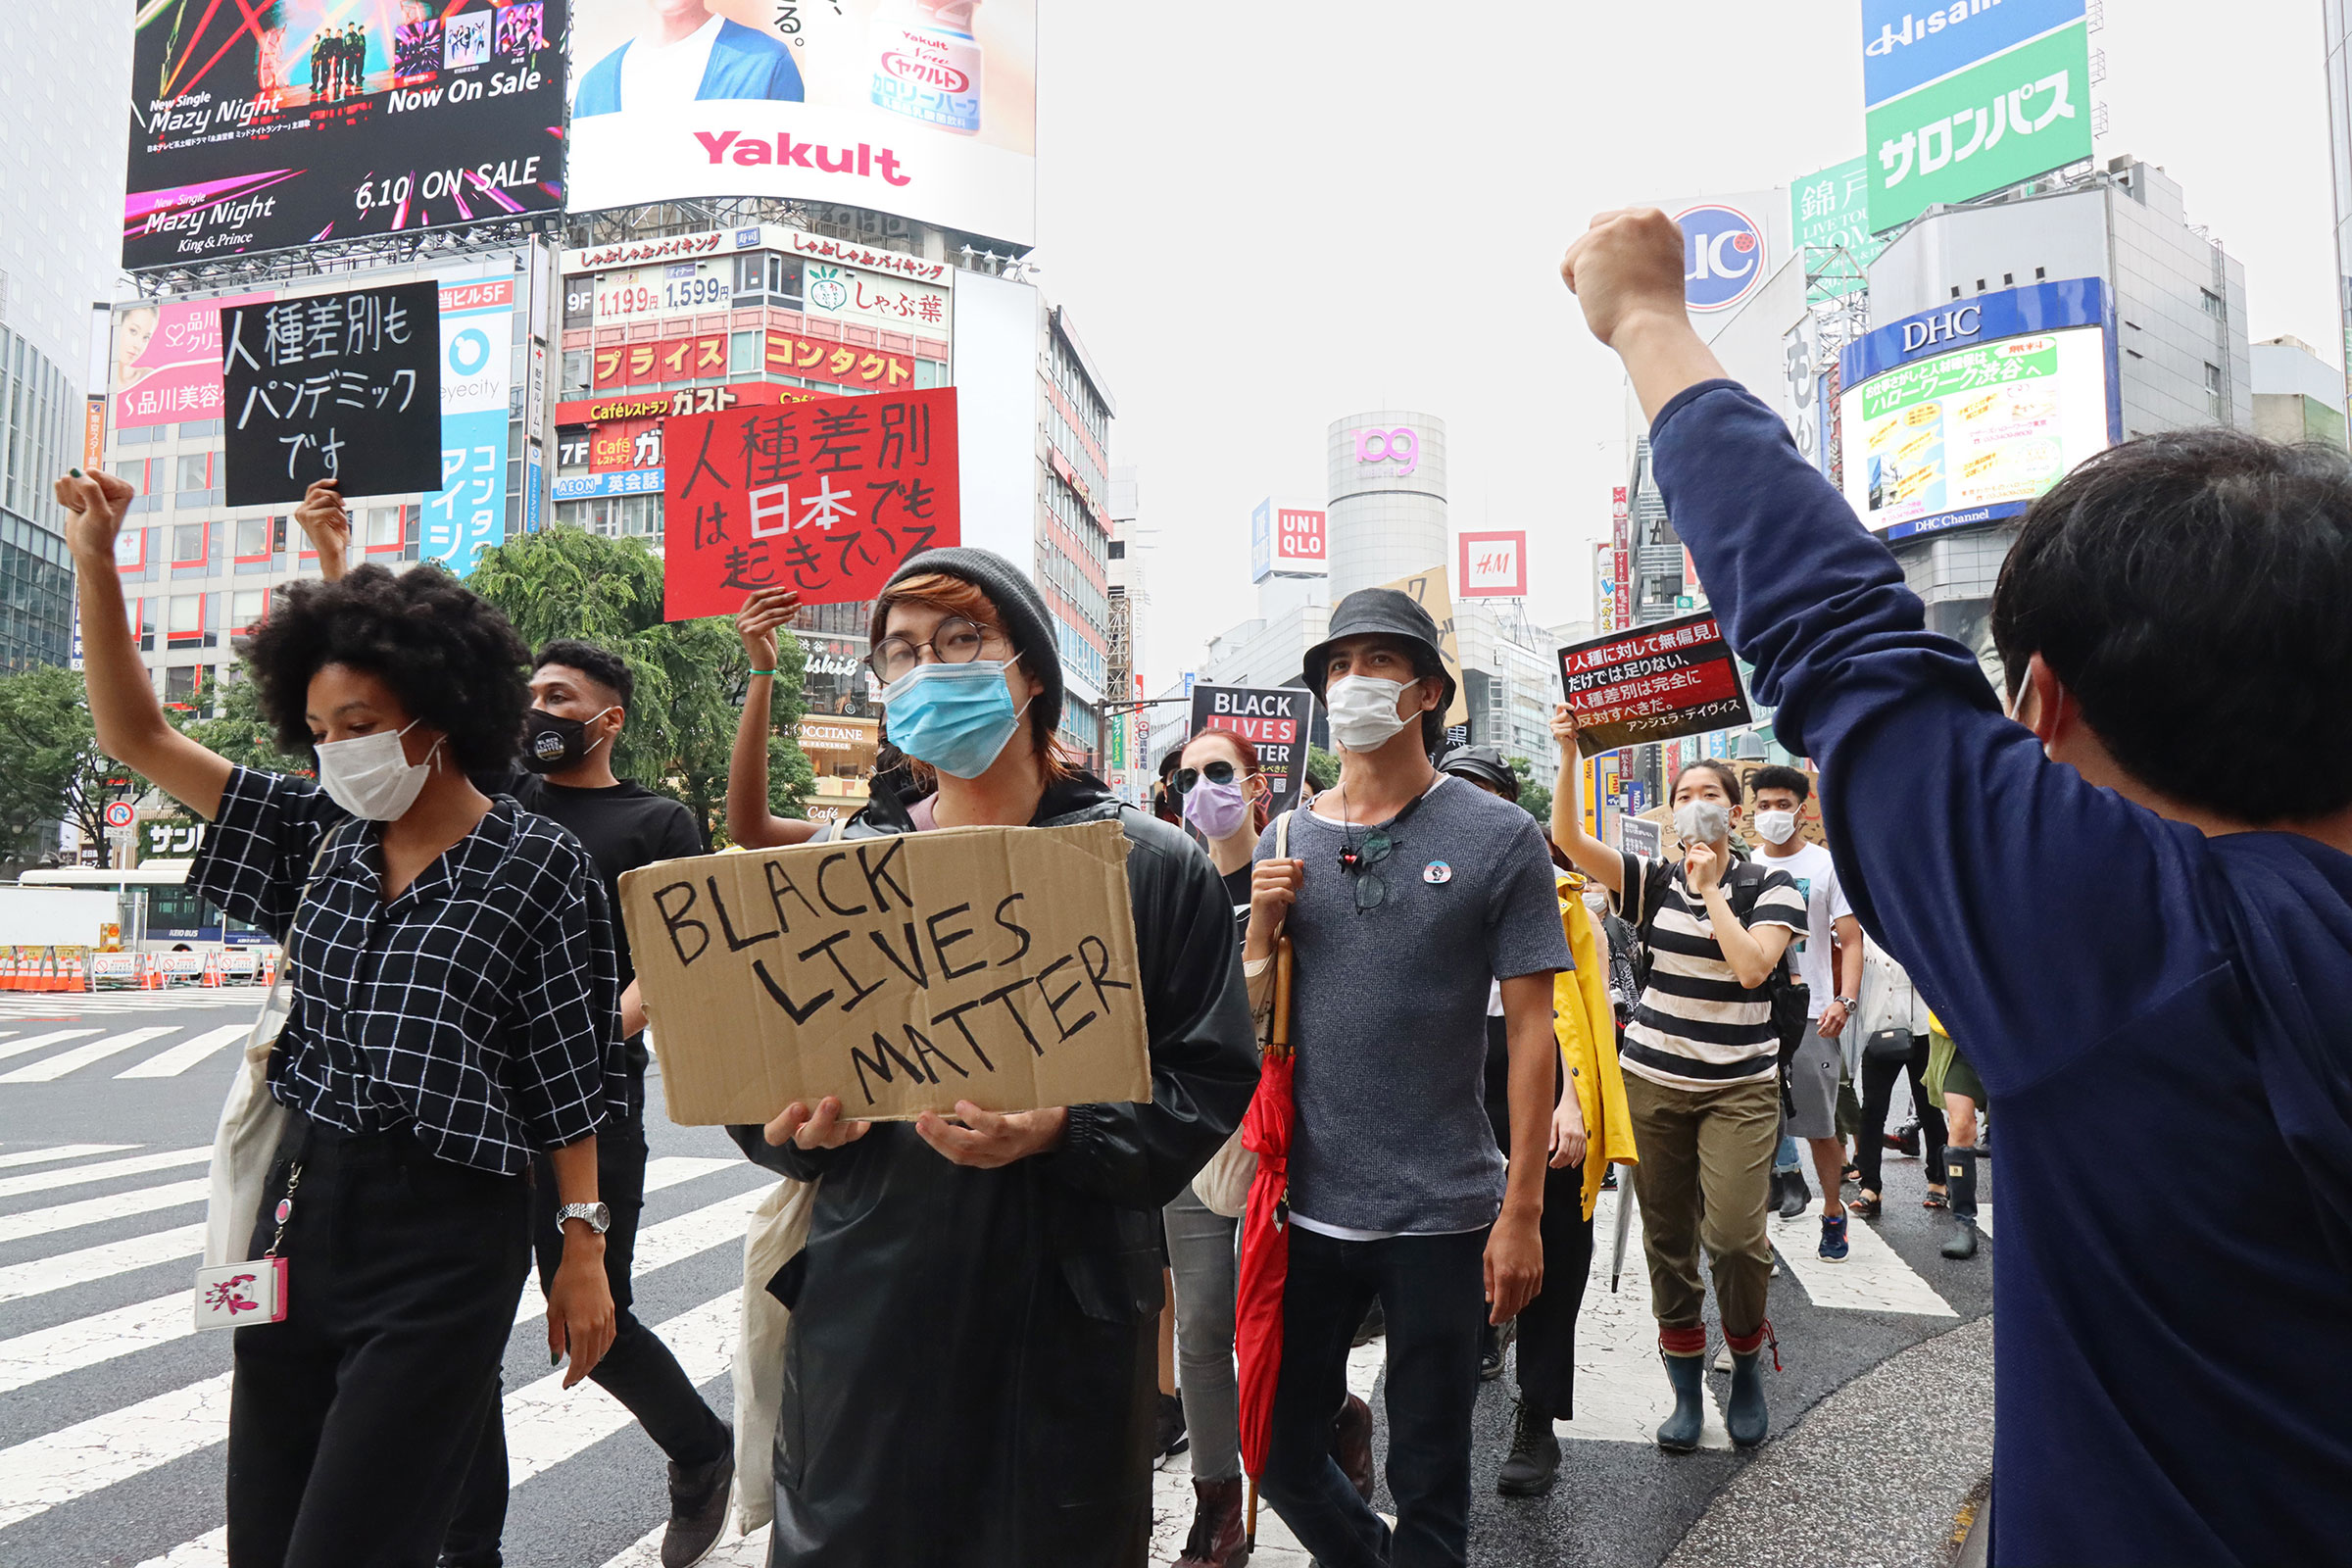 A June 14, 2020 march against racism in Tokyo